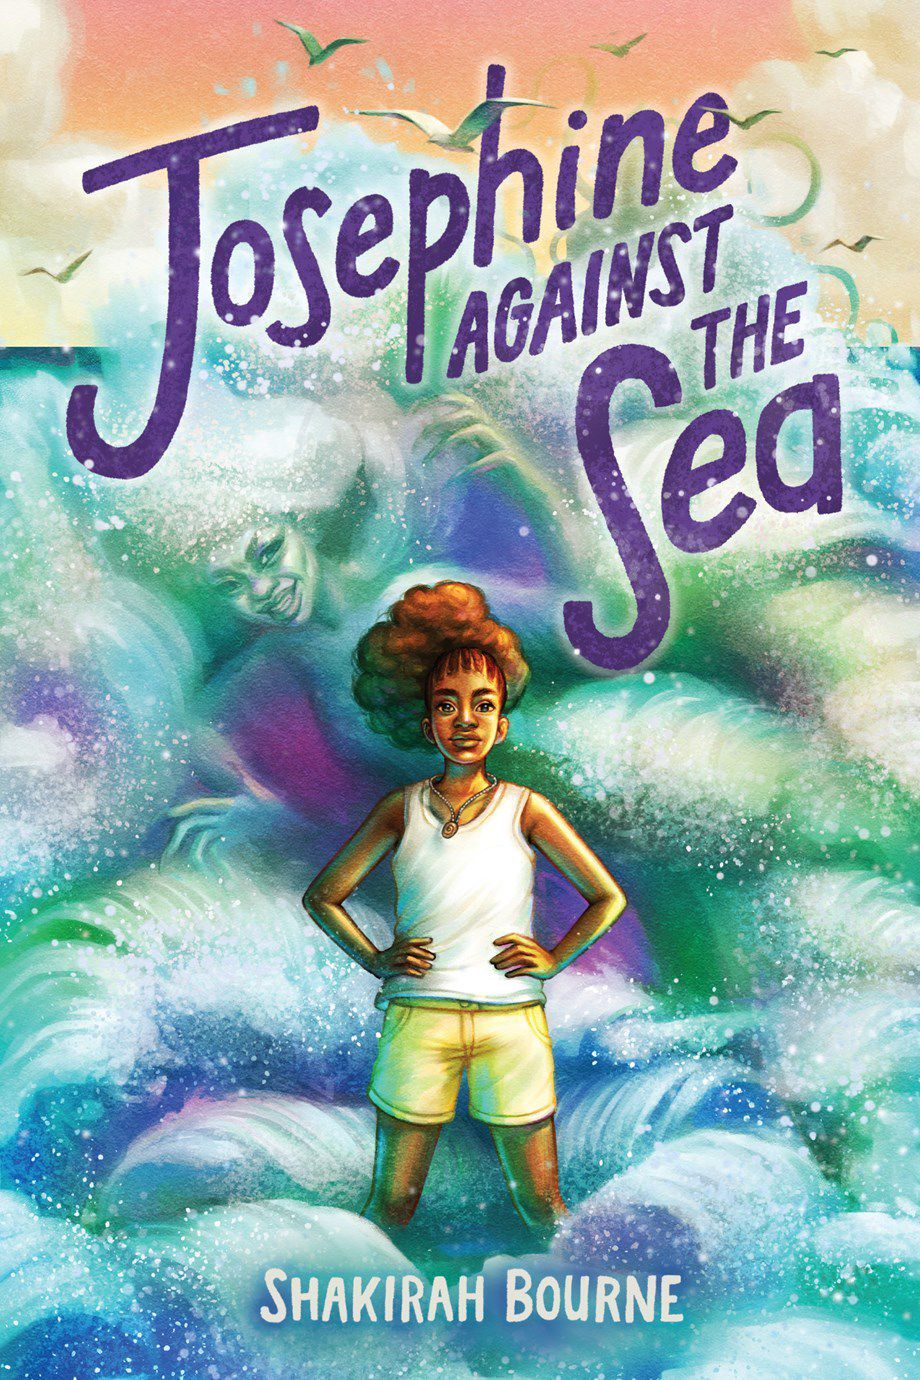 cover image of Josephine Against the Sea by Shakirah Bourne